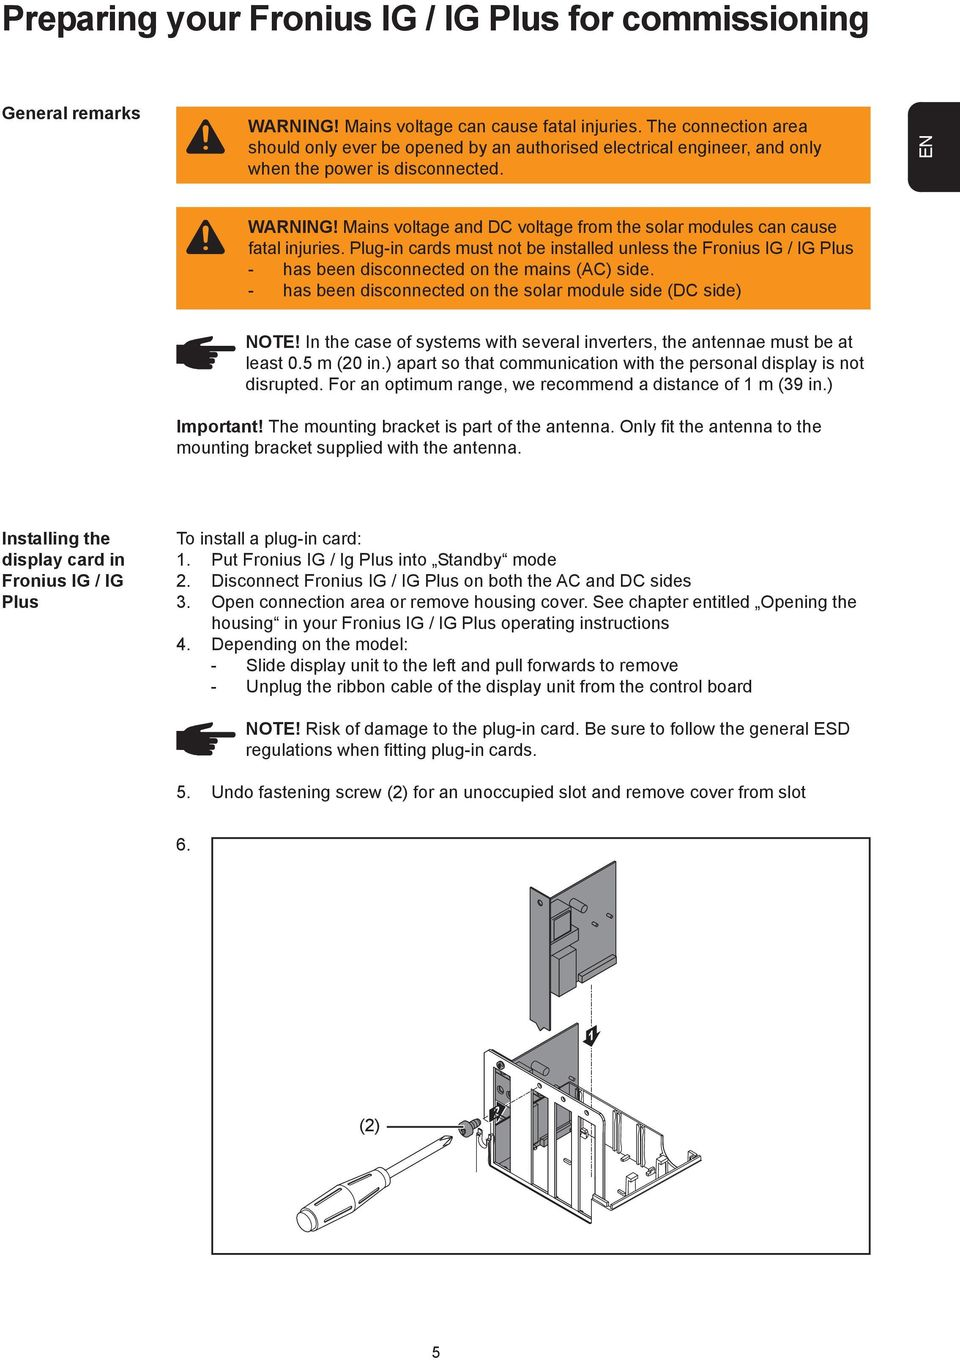 Mains voltage and DC voltage from the solar modules can cause fatal injuries. Plug-in cards must not be installed unless the Fronius IG / IG Plus - has been disconnected on the mains (AC) side.